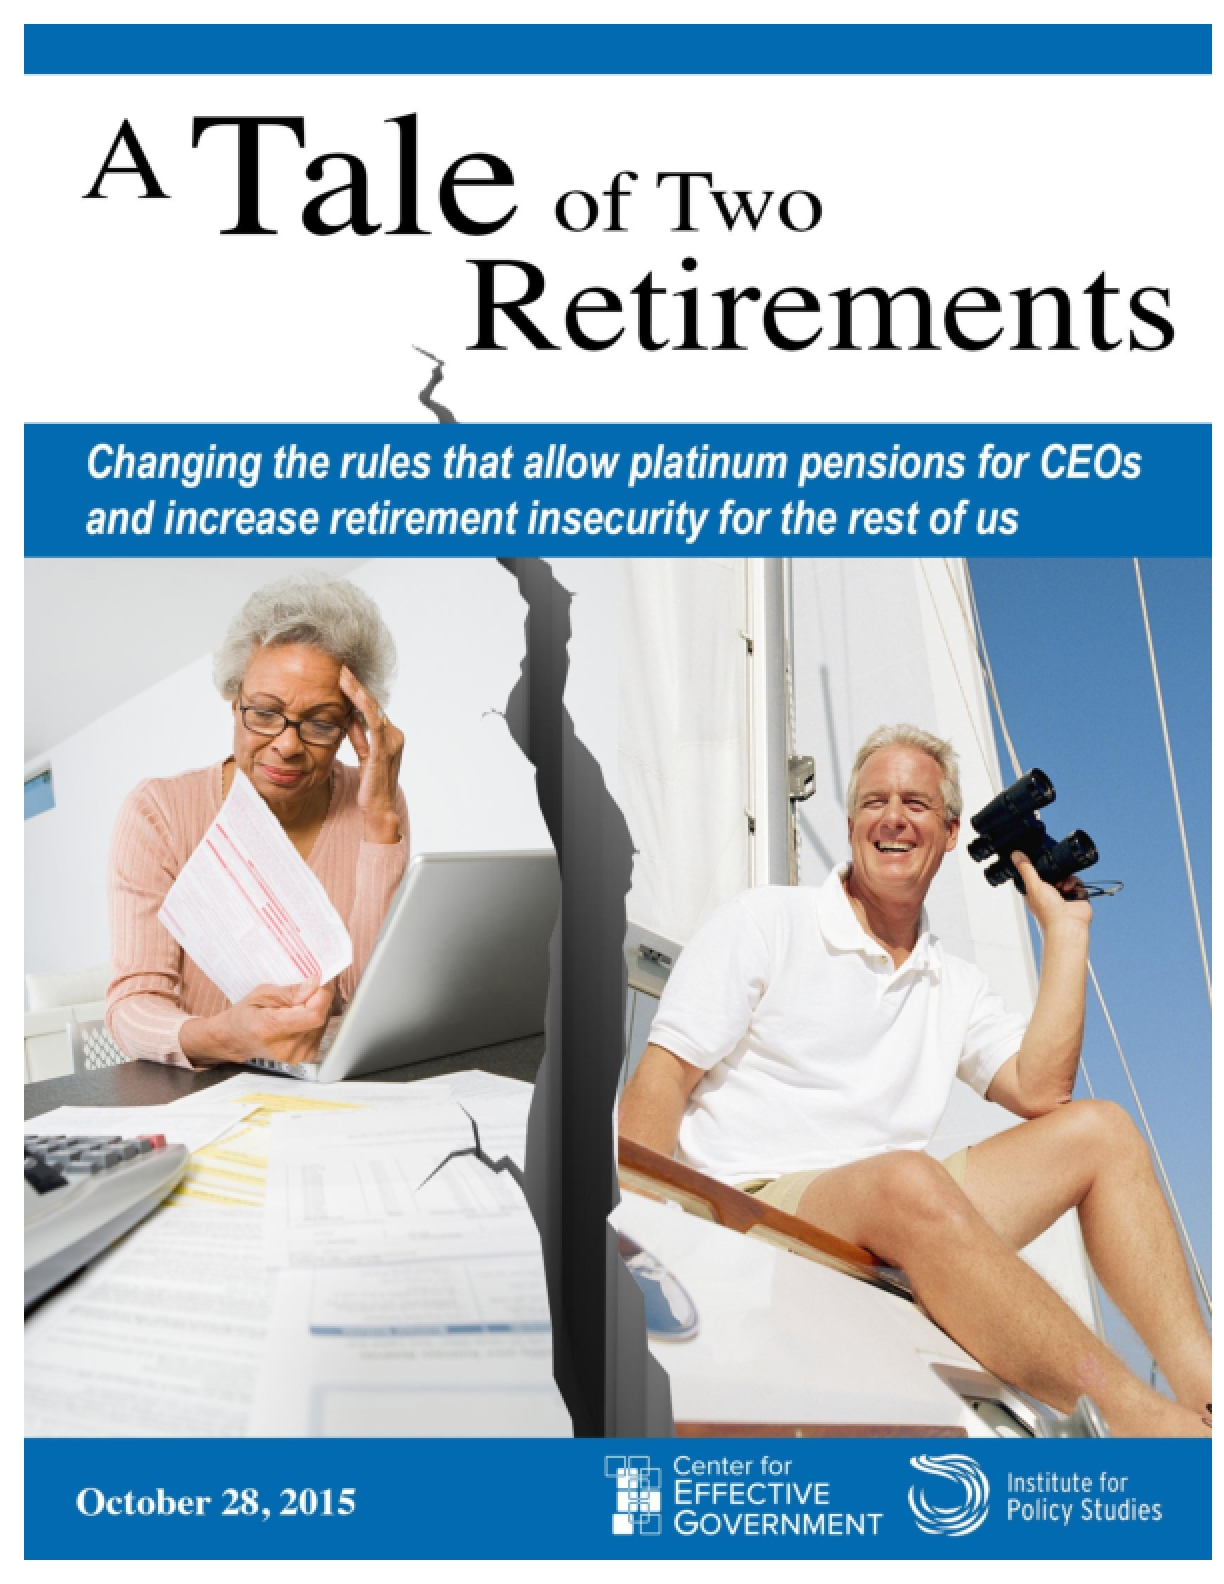 The Tale of Two Retirements: Changing the Rules that Allow Platinum Pensions for CEOs and Increase Retirment Insecurity for the Rest of Us